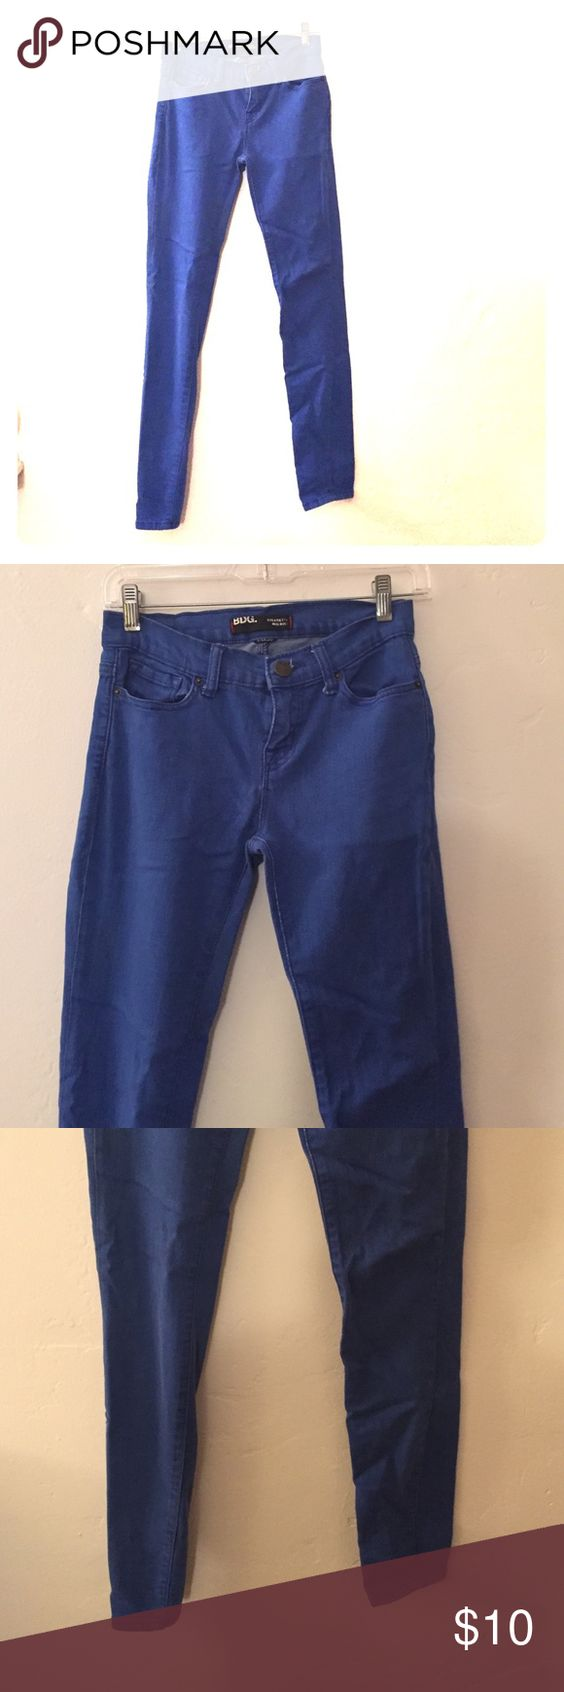 Colored skinny jeans urban outfitters Royal blue. Super soft. Good condition BDG Jeans Skinny